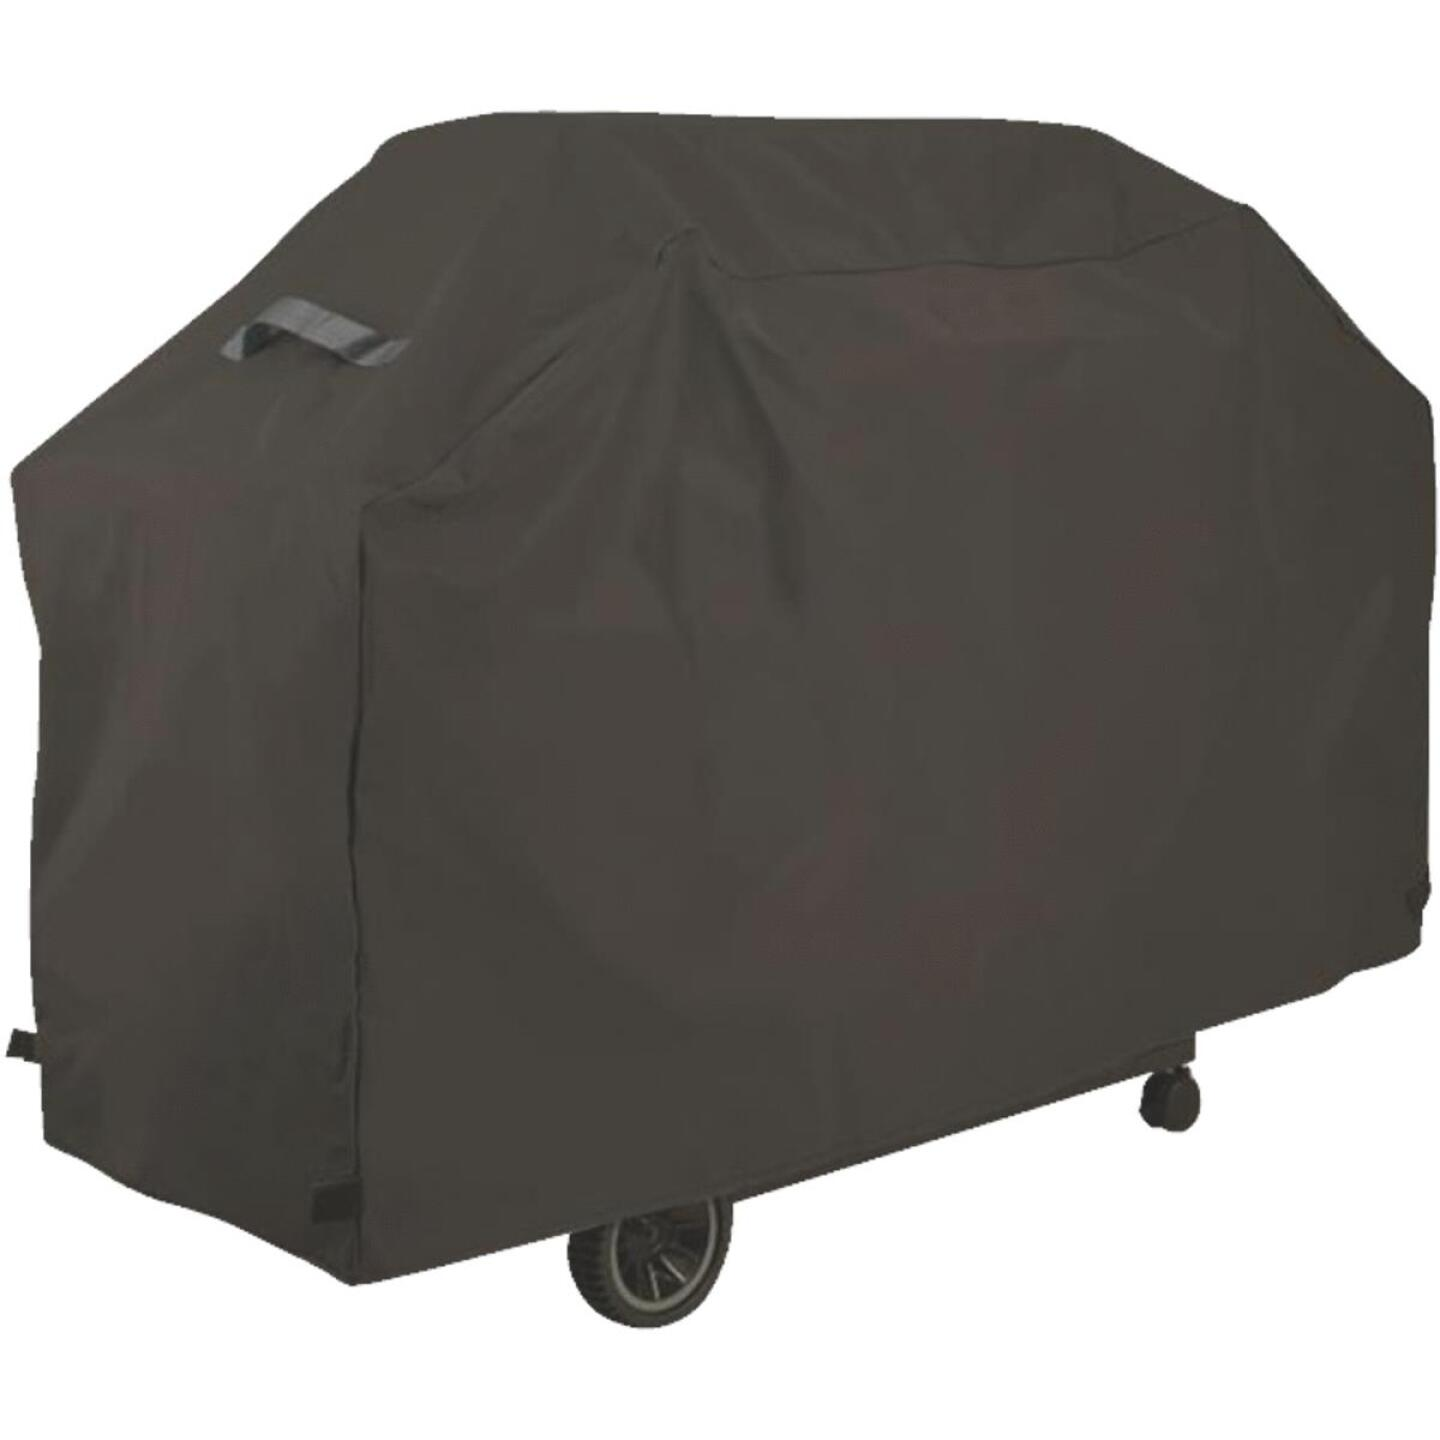 GrillPro Premium 73 In. Gray Vinyl Grill Cover Image 1